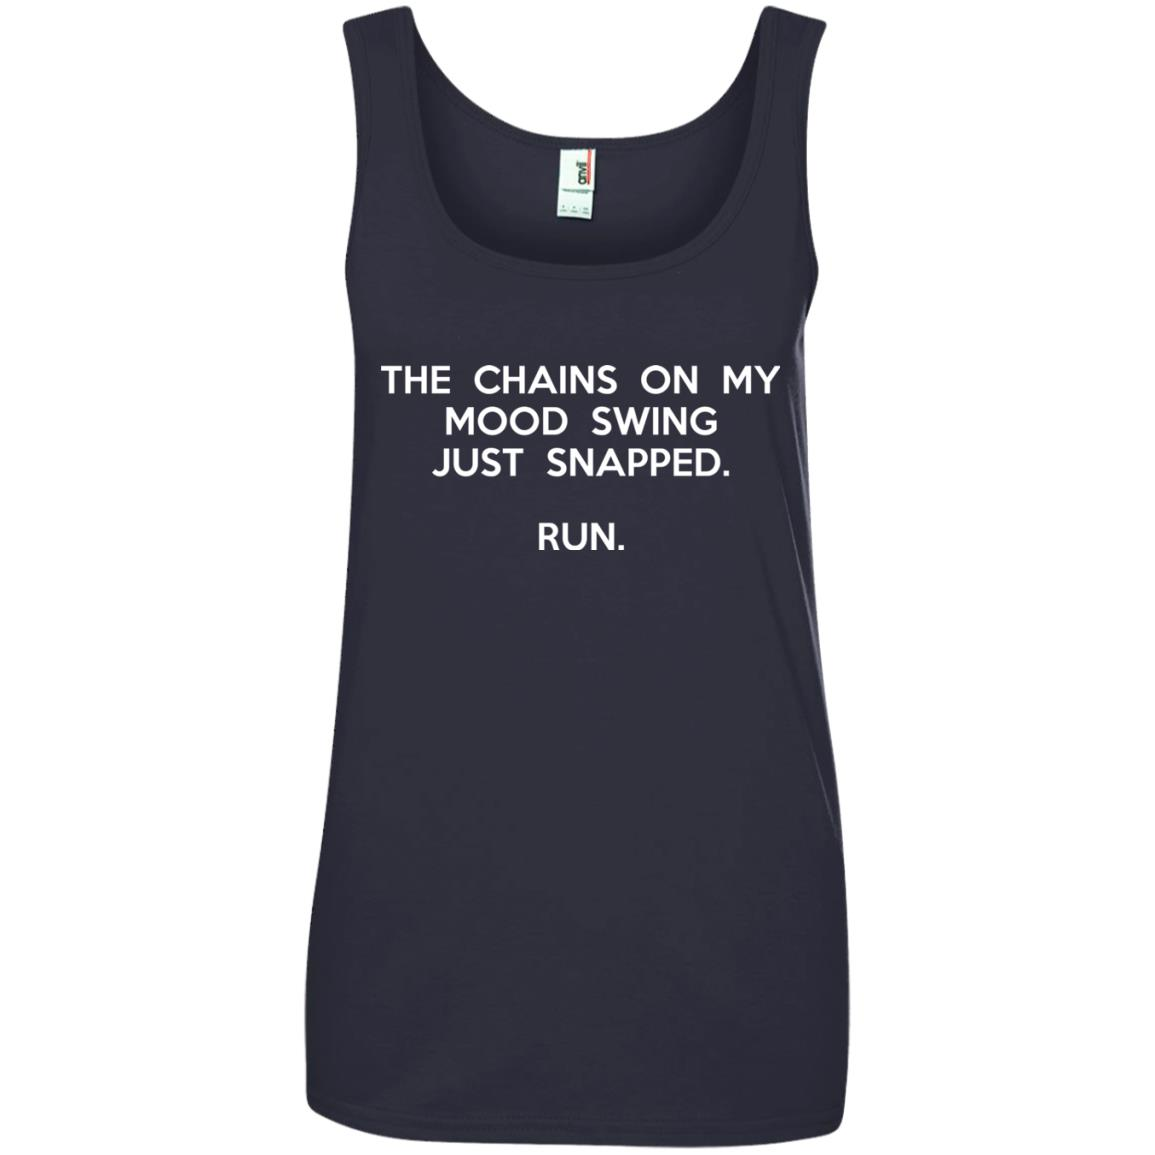 image 2946 - The chains on my mood swing just snapped shirt